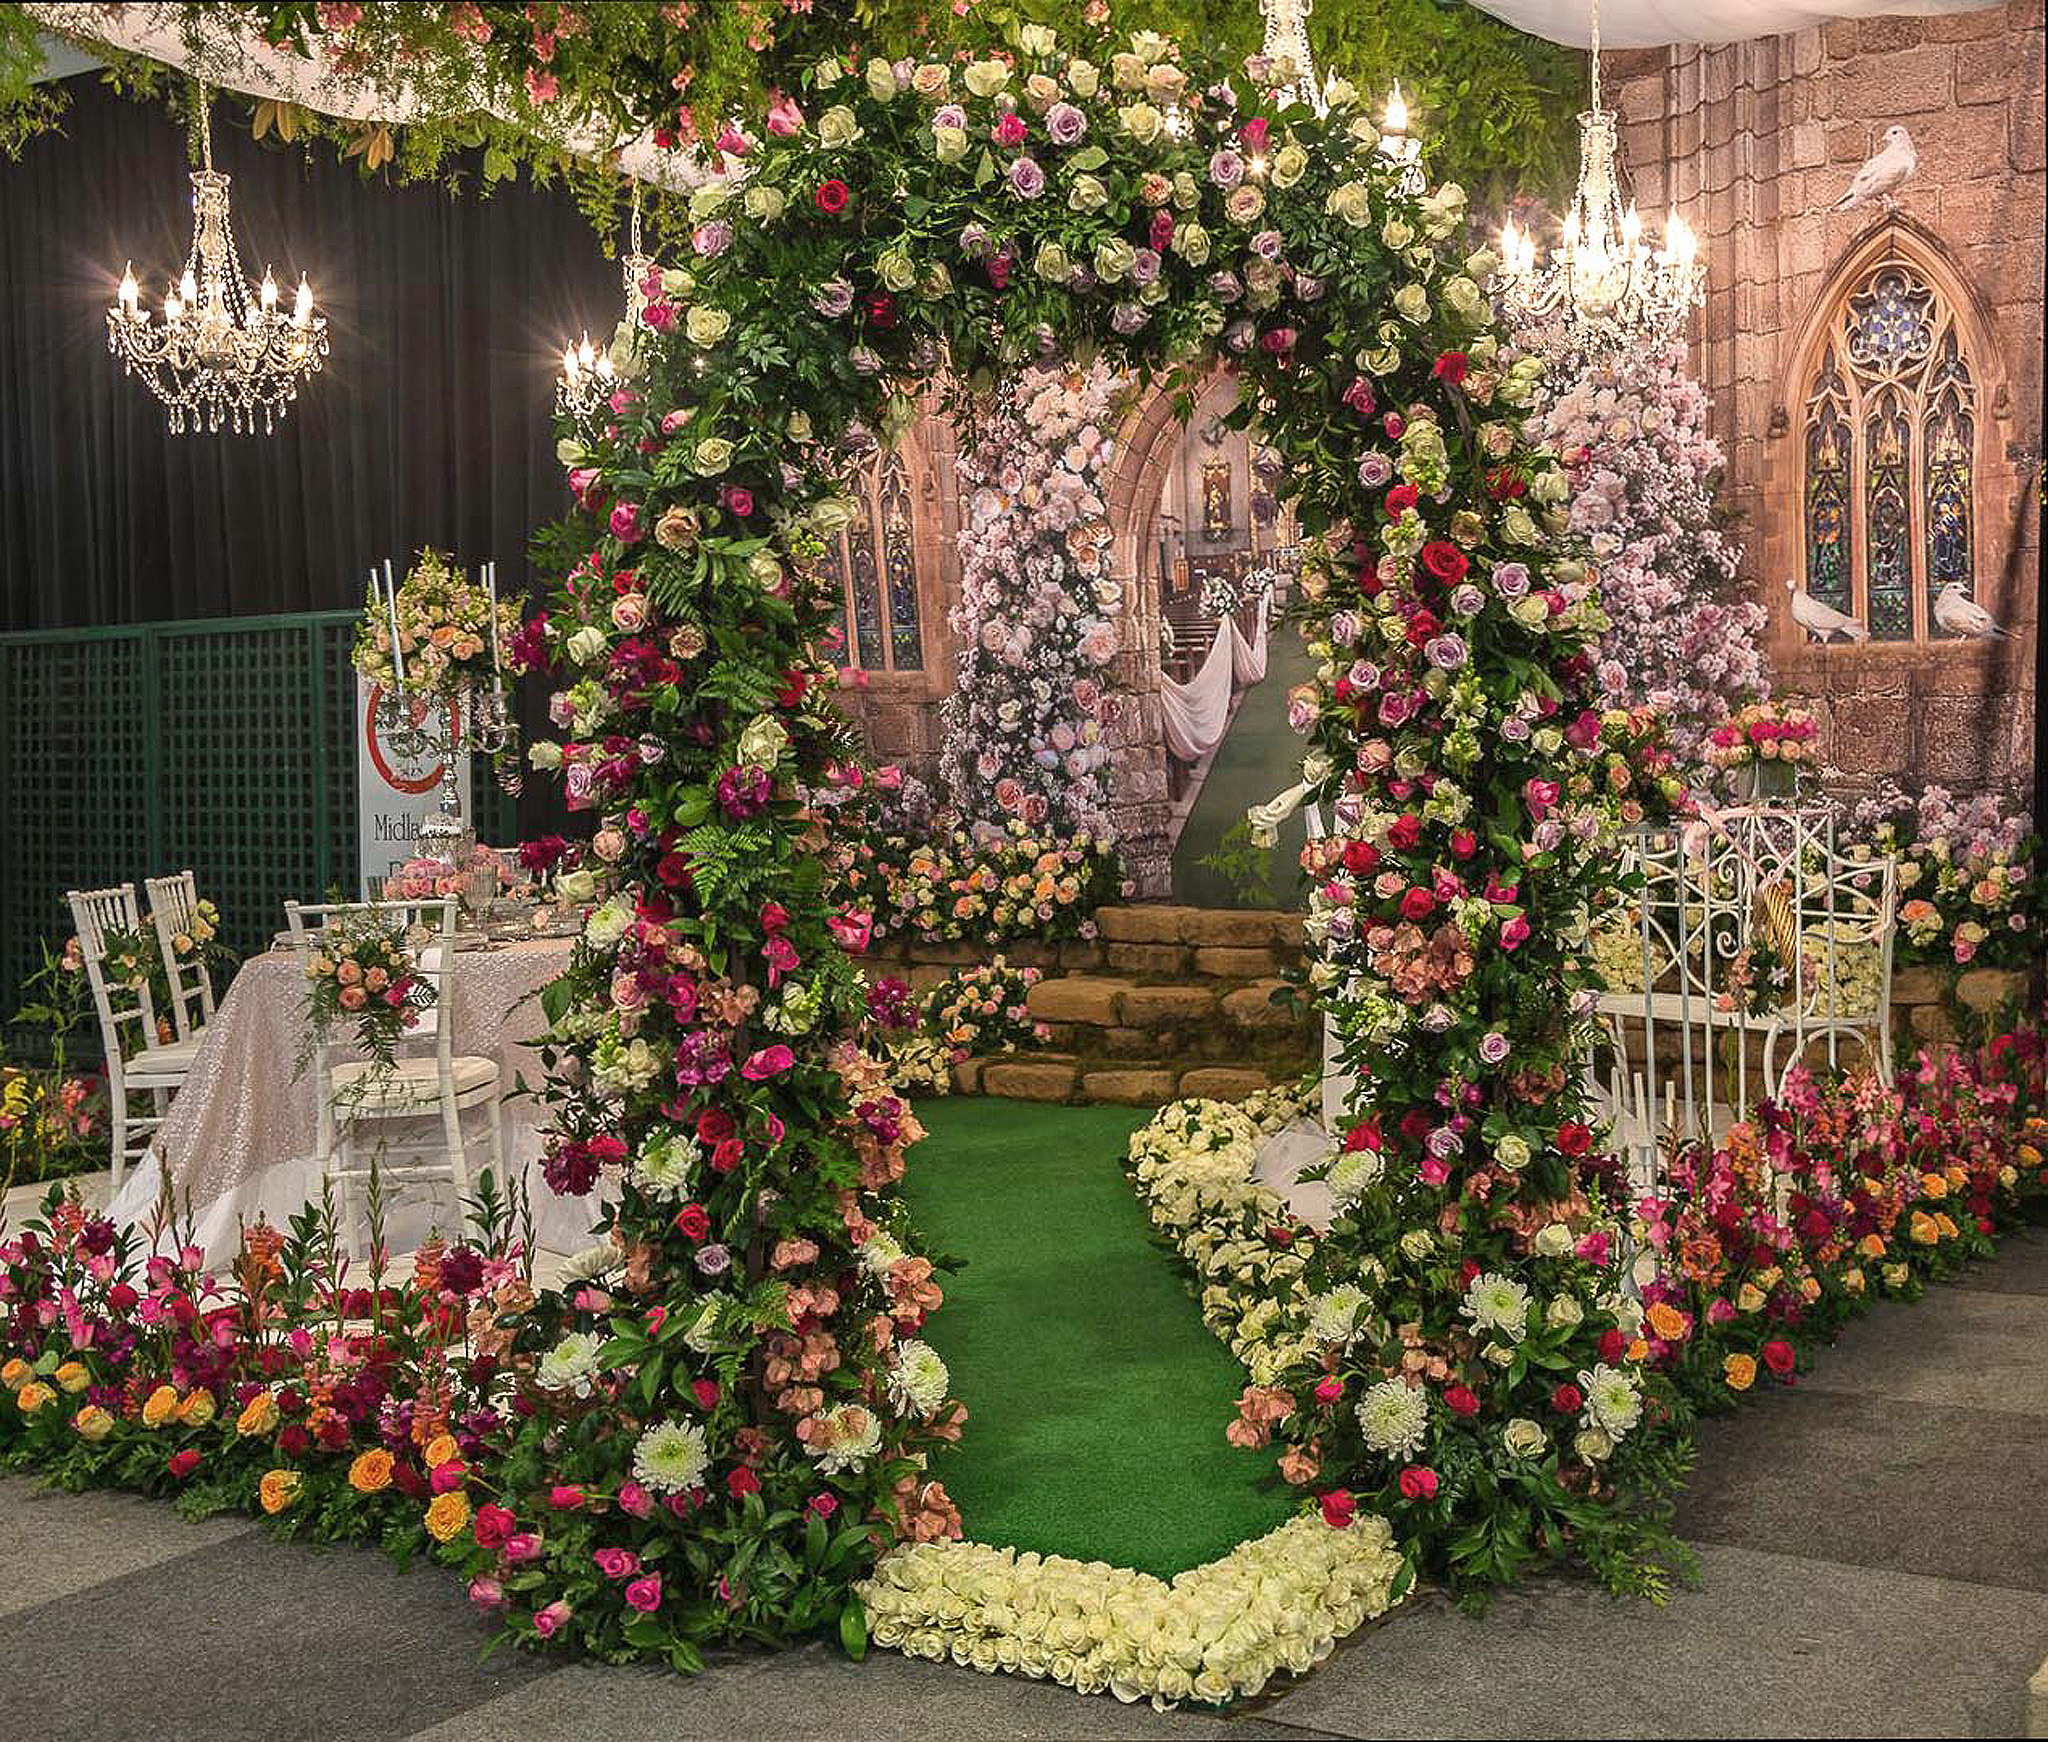 Floral arch at Garden Show